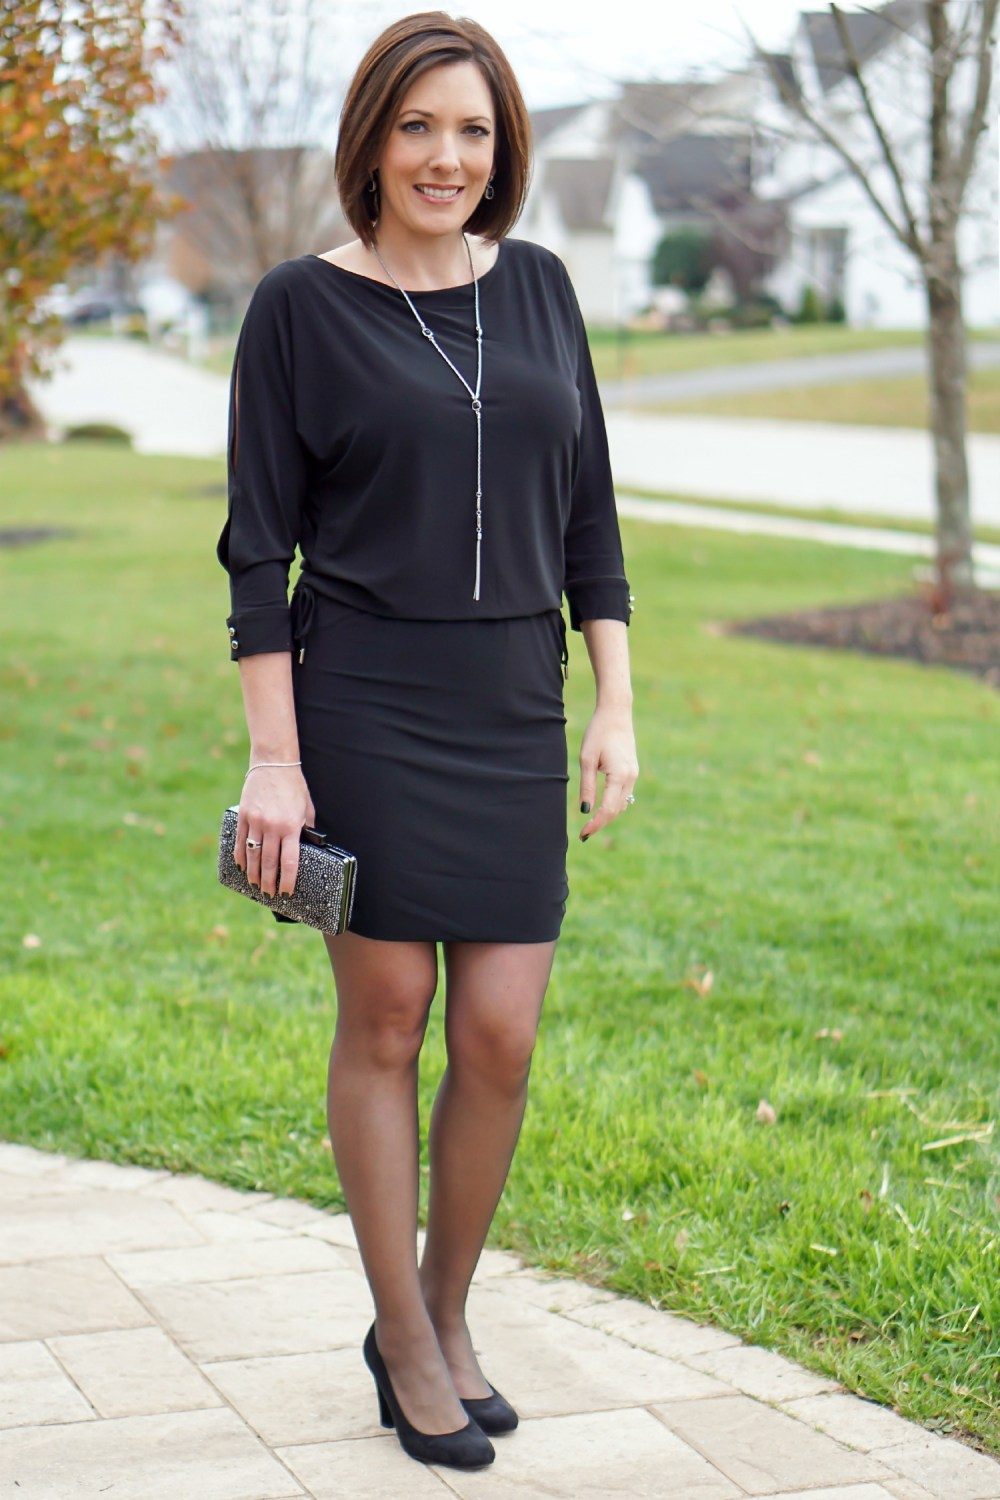 Resultado de imagen de sheer black tights with dress